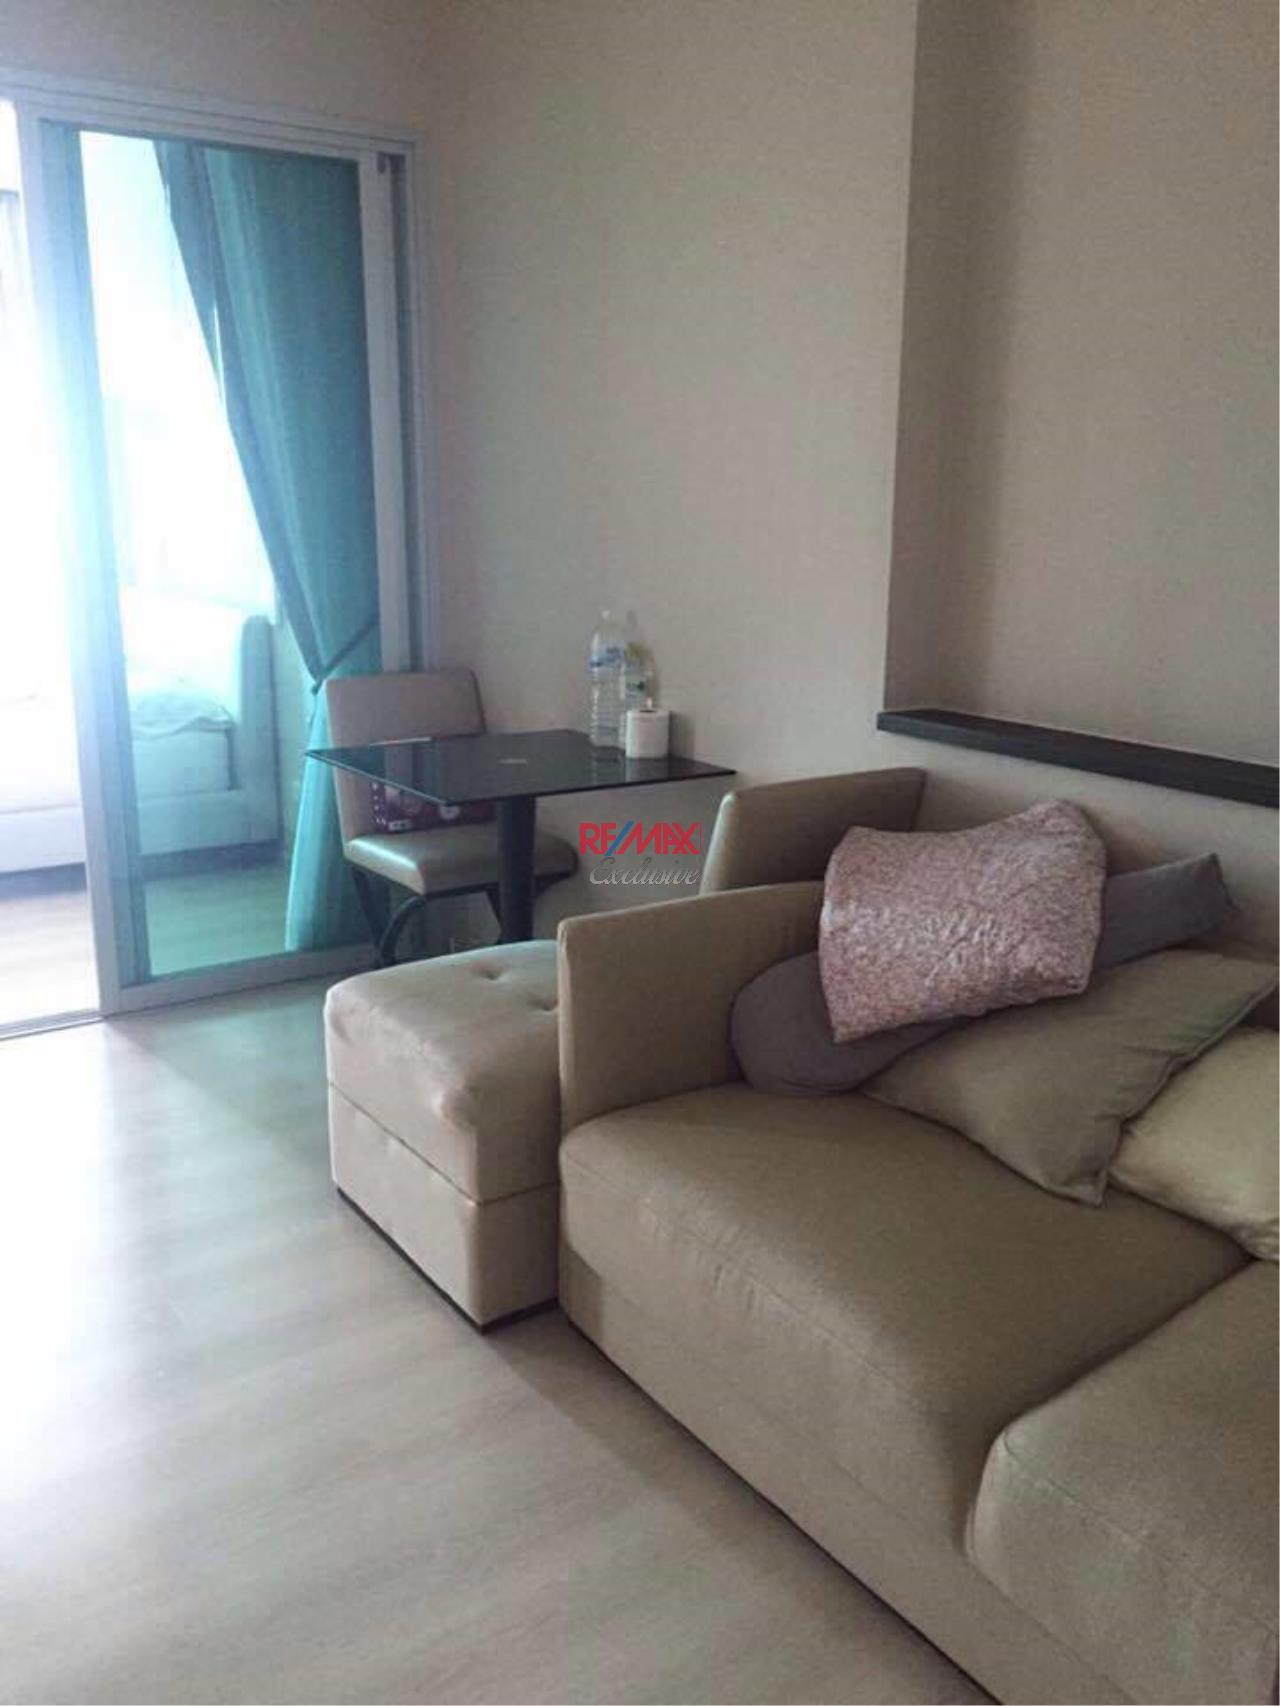 RE/MAX Exclusive Agency's Trendy 1 bedroom for sale @Life Ratchada - Huay Kwang 2